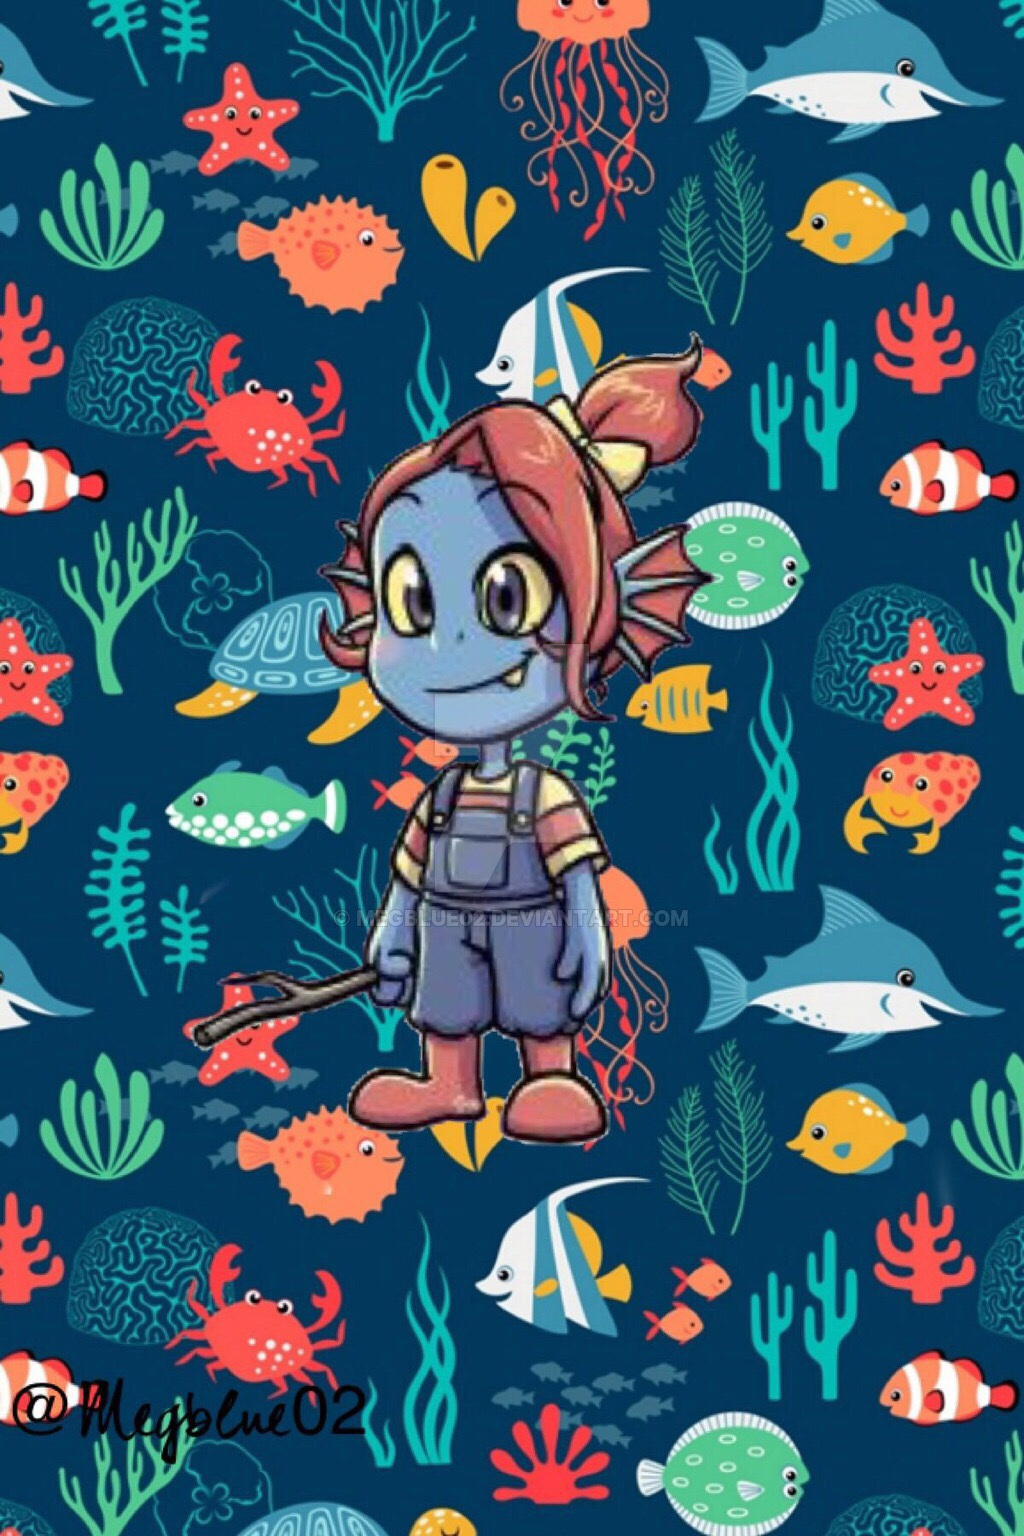 Cute Cartoon Wallpaper Pc Cute Little Undyne Undertale Wallpaper Undertaleundyne